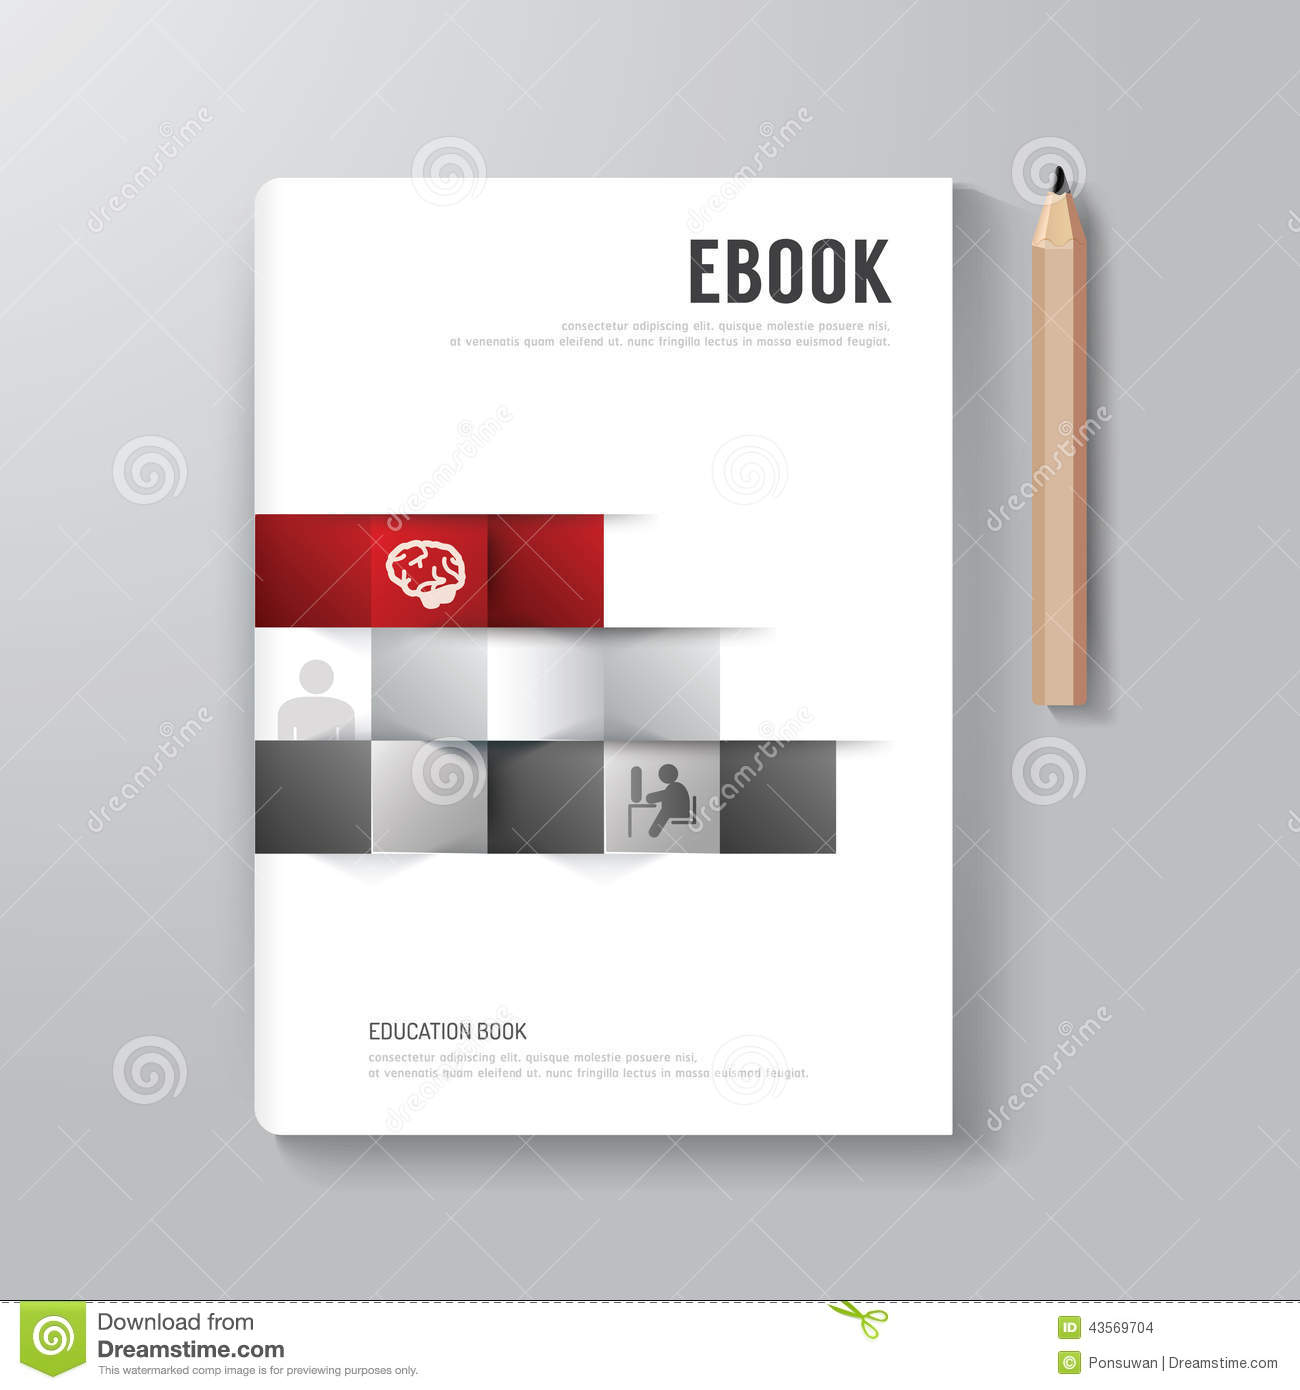 Book Cover Design Templates Free : Cover book digital design minimal style template stock